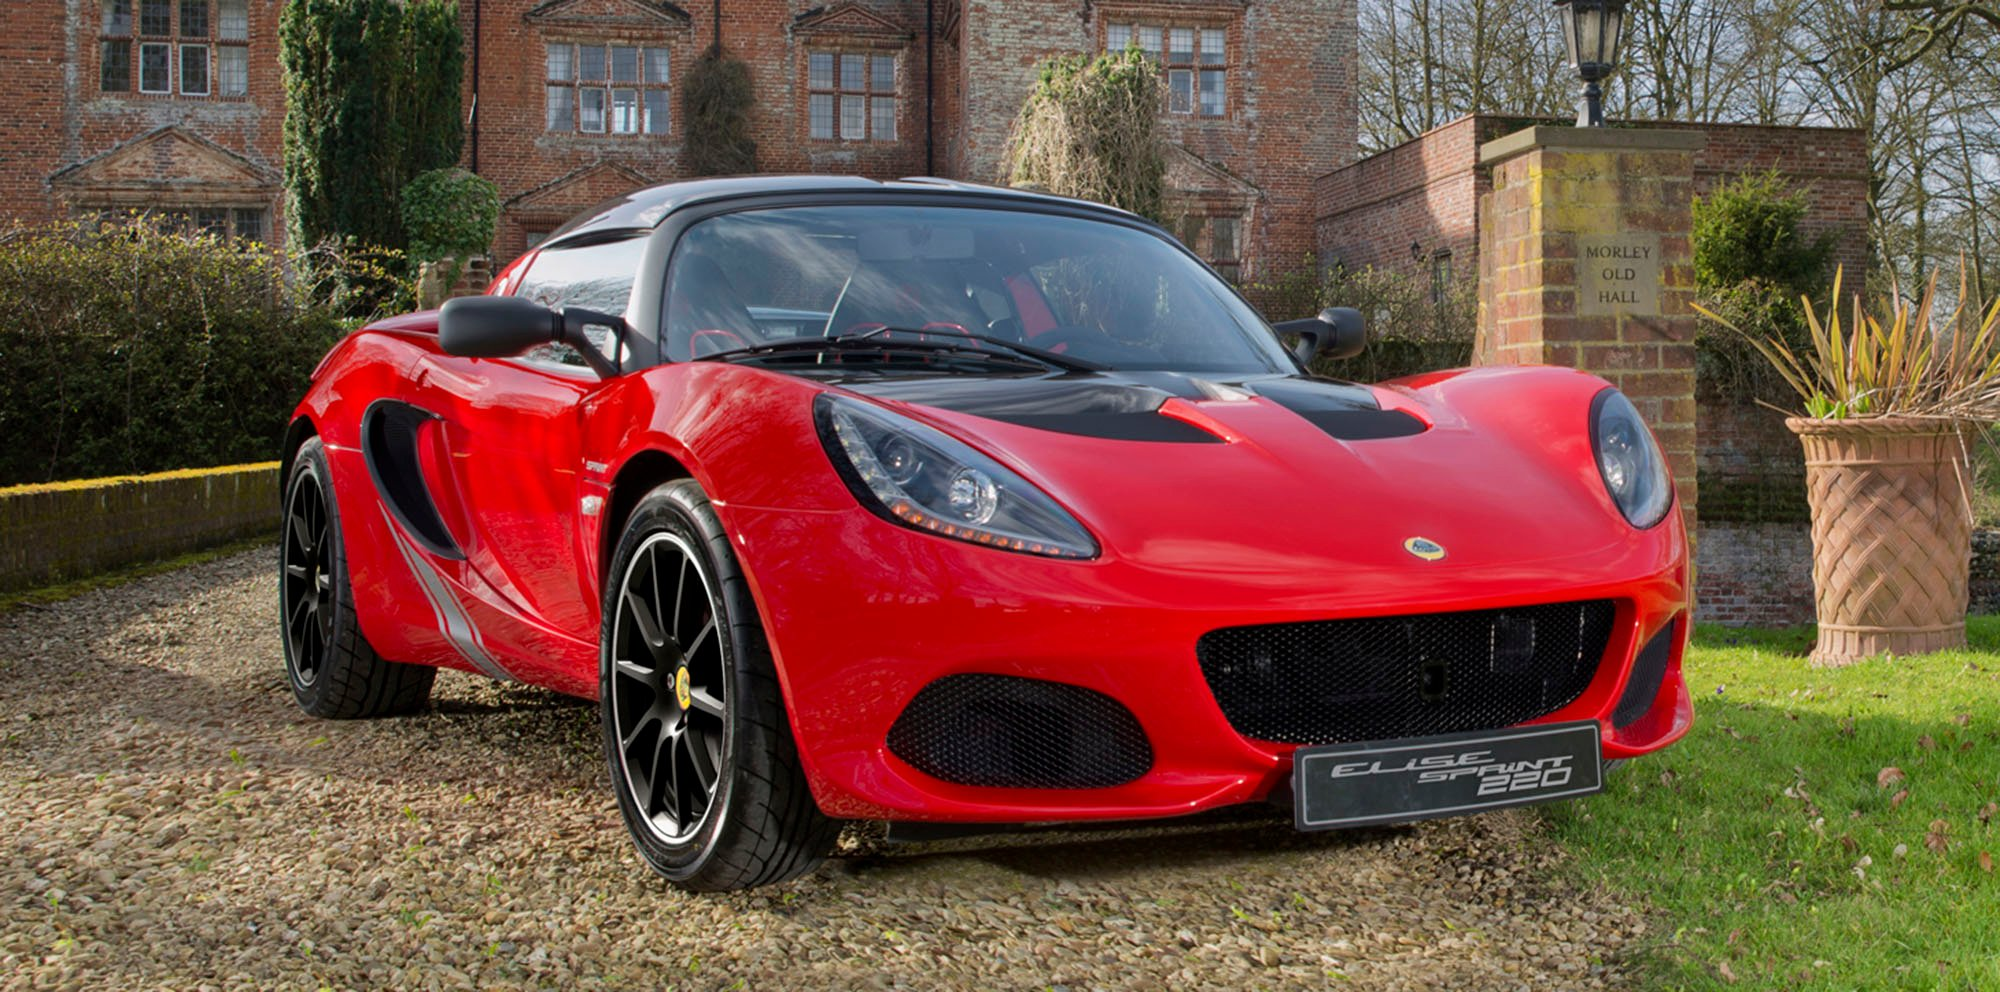 2017 Lotus Elise Sprint Unveiled With Less Weight Changes For Rest Of Range Photos Caradvice